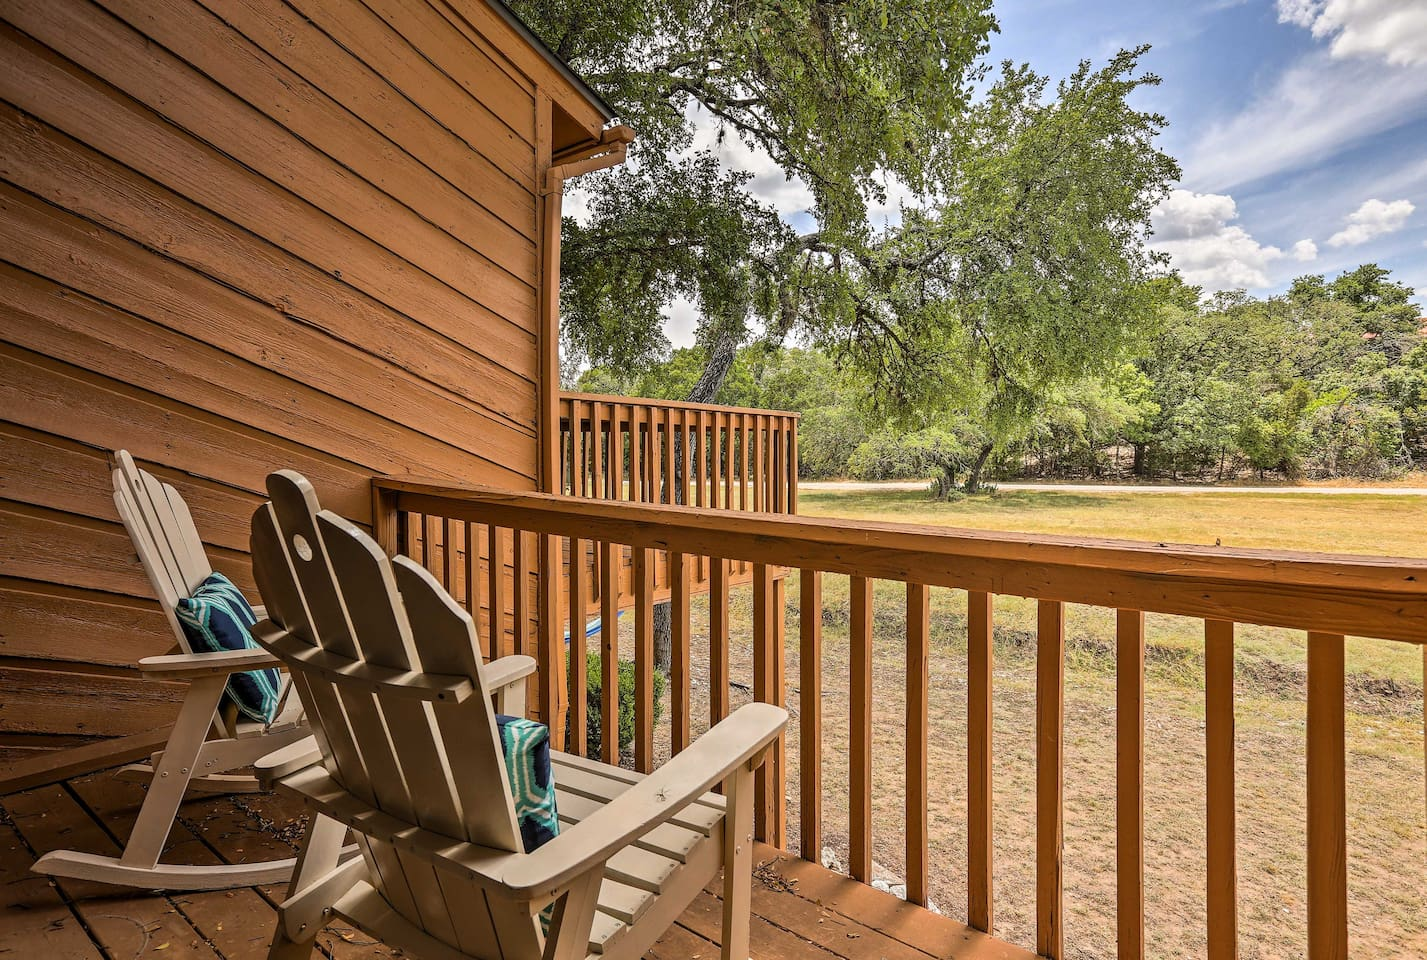 Enjoy picturesque creek views from the deck of this 1-bedroom, 2-bathroom condo.